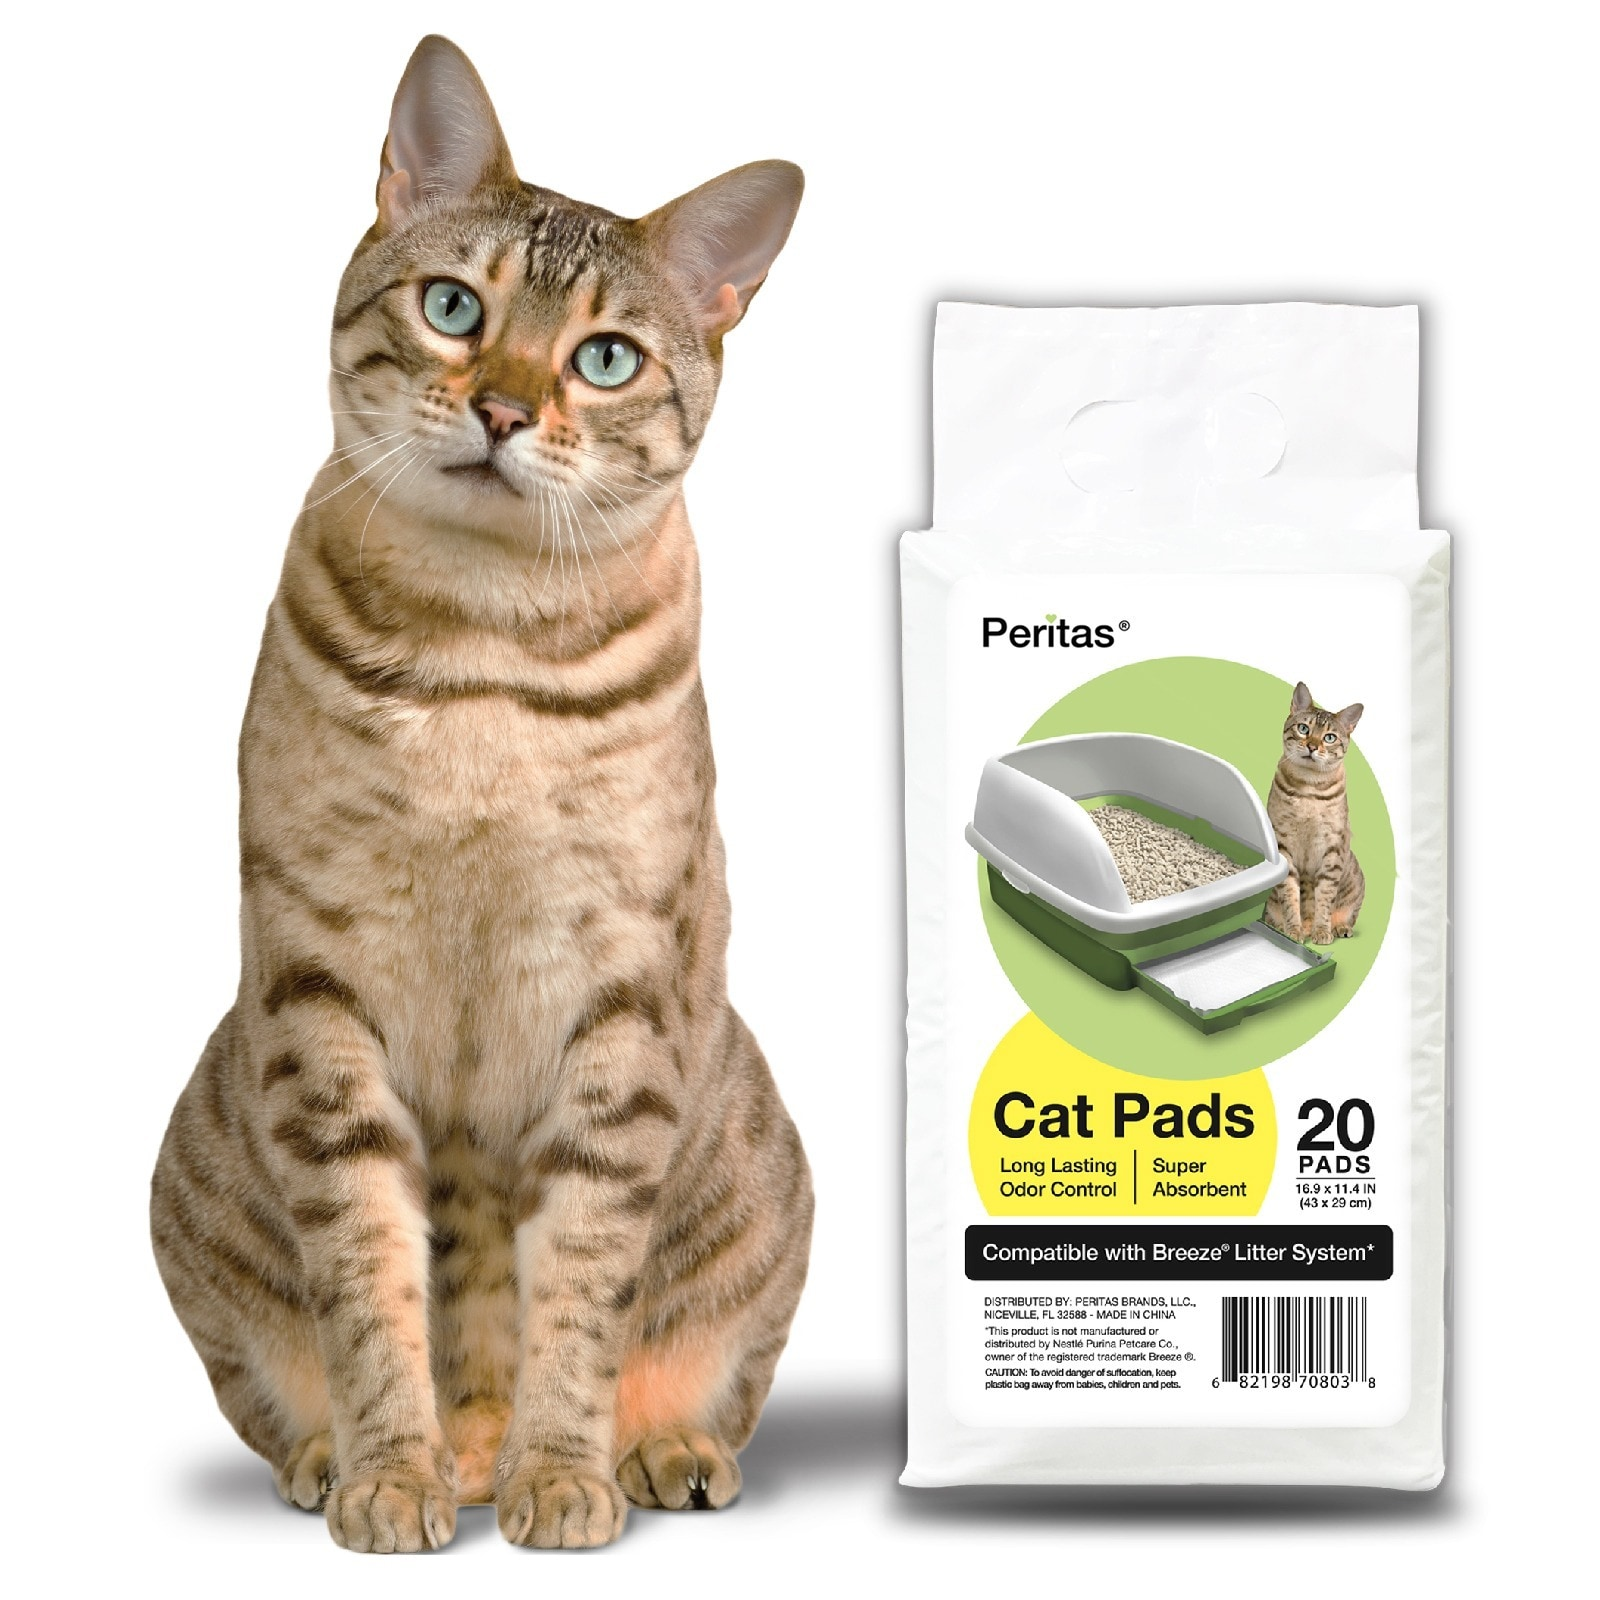 Peritas Generic Refill Cat Pads for Breeze Tidy Cat Litter System (80 pads)  - Free Shipping Today - Overstock.com - 20720272